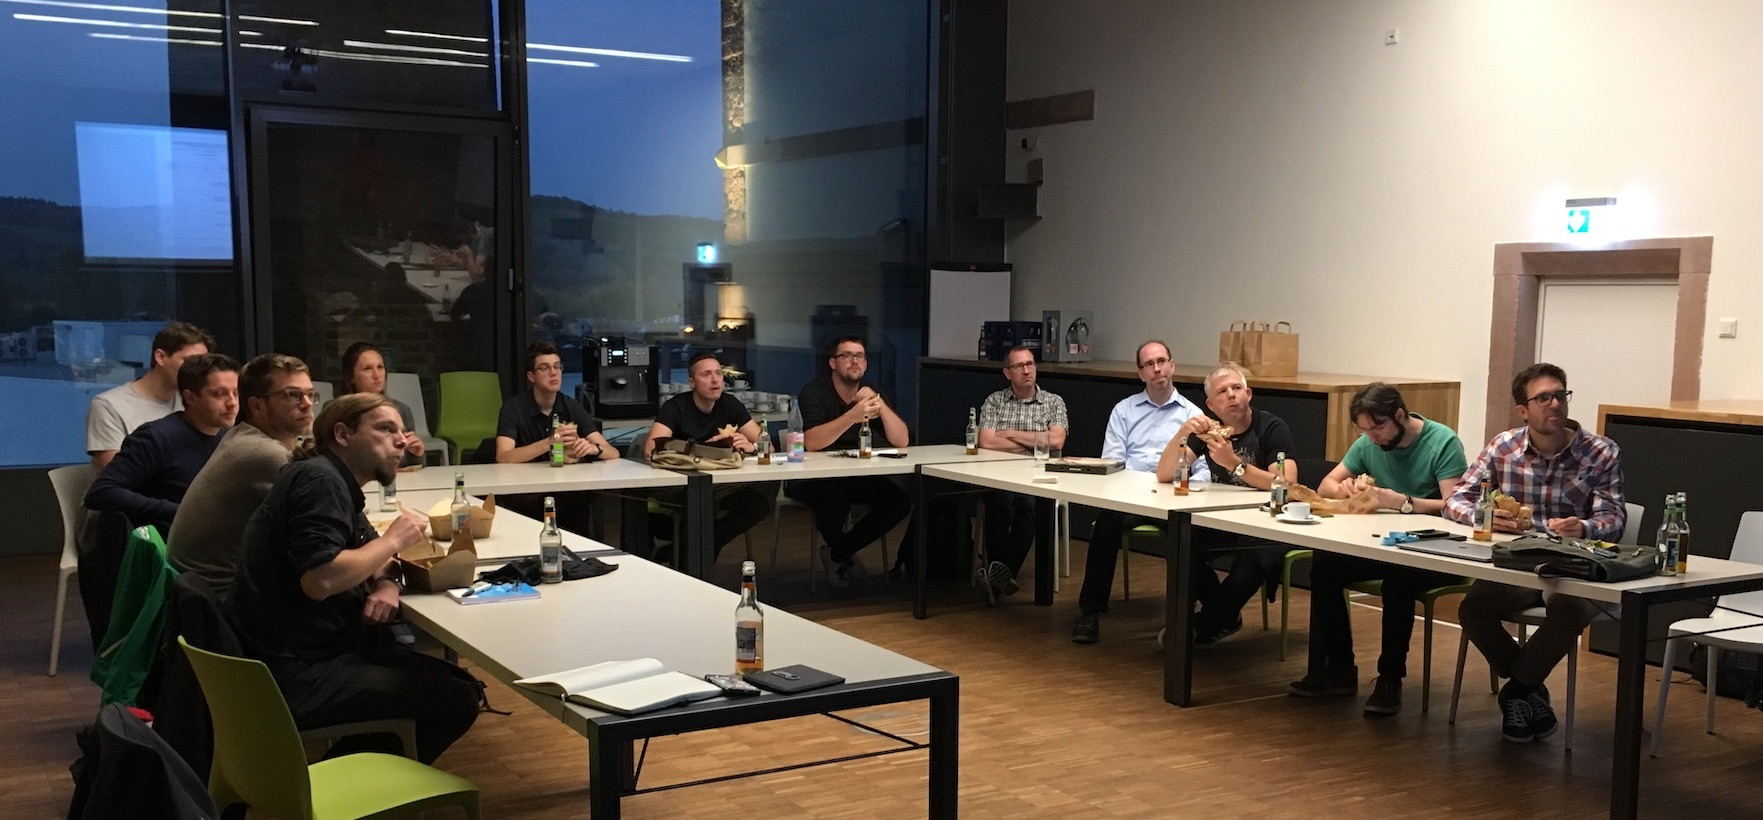 WUELUG03: Third meeting of the Würzburg LabVIEW User Group